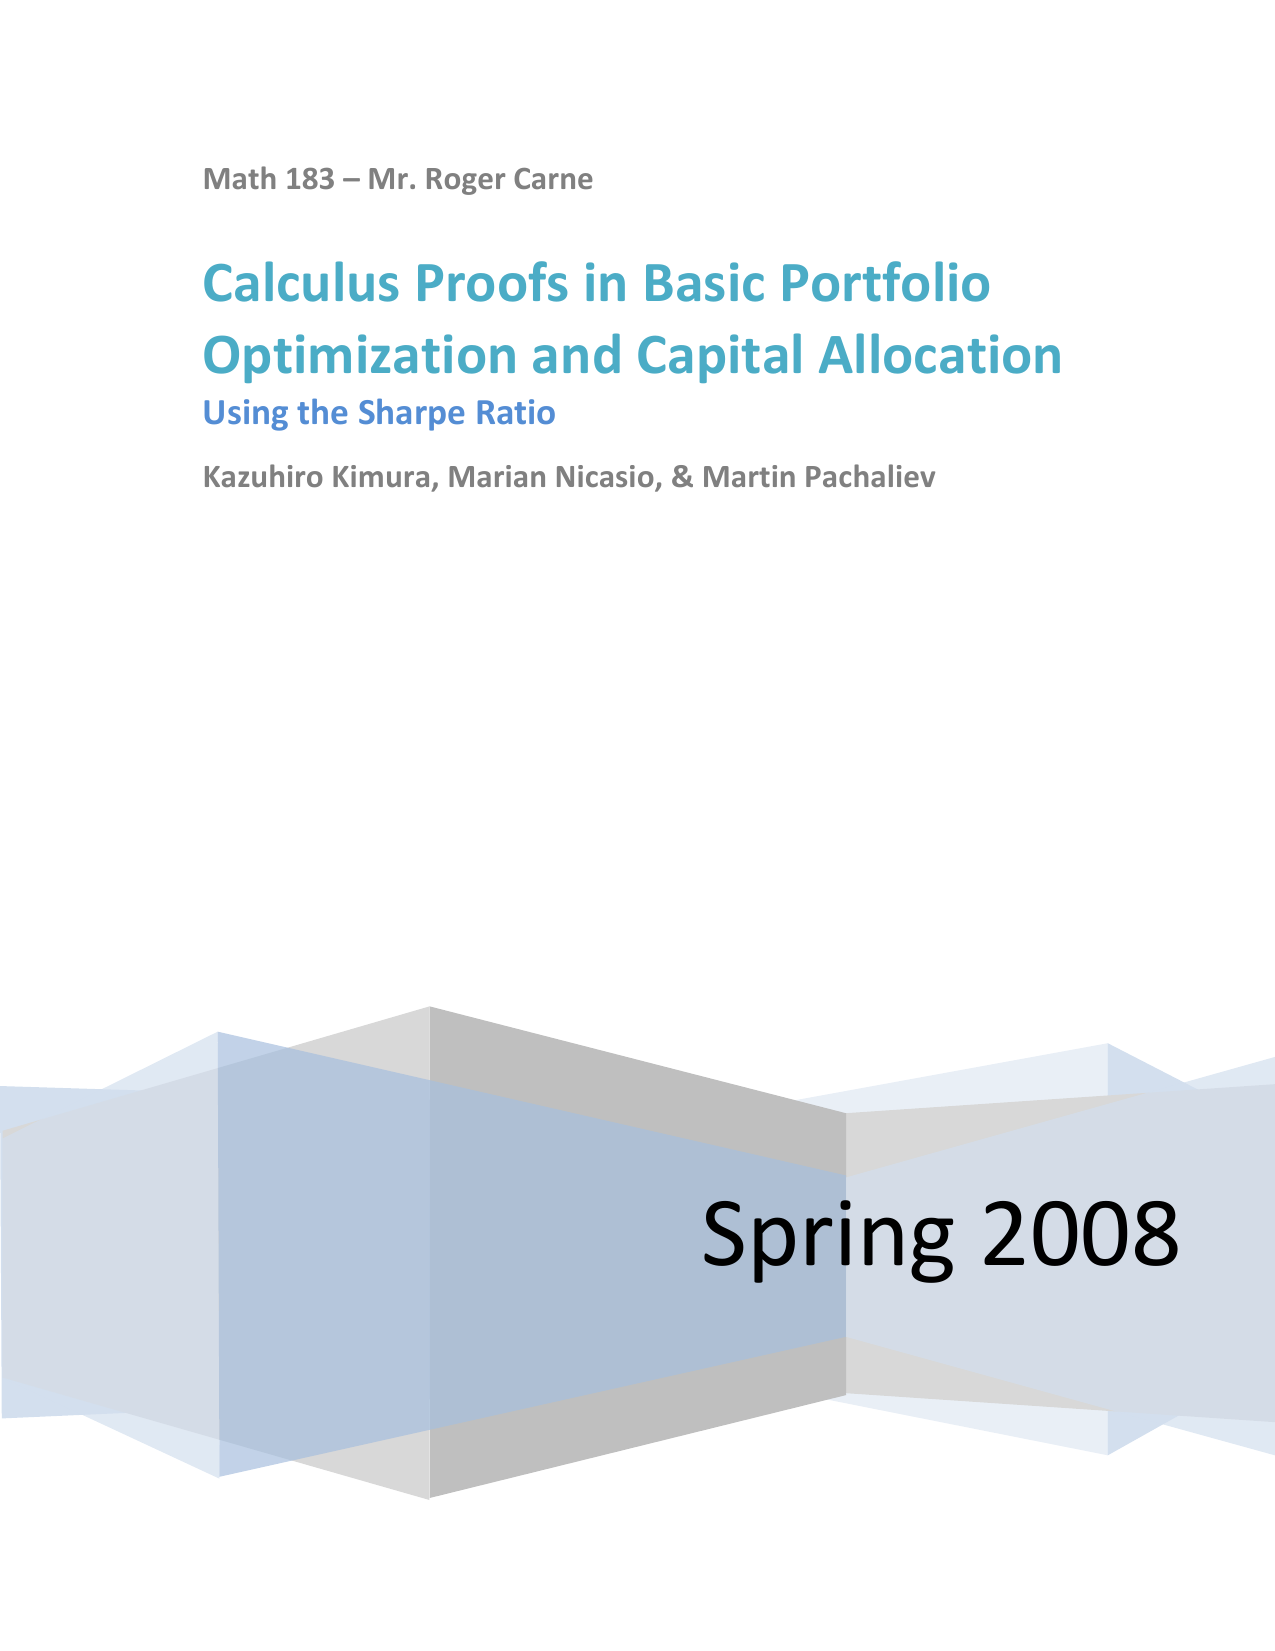 Calculus Proofs in Basic Portfolio Optimization and Capital